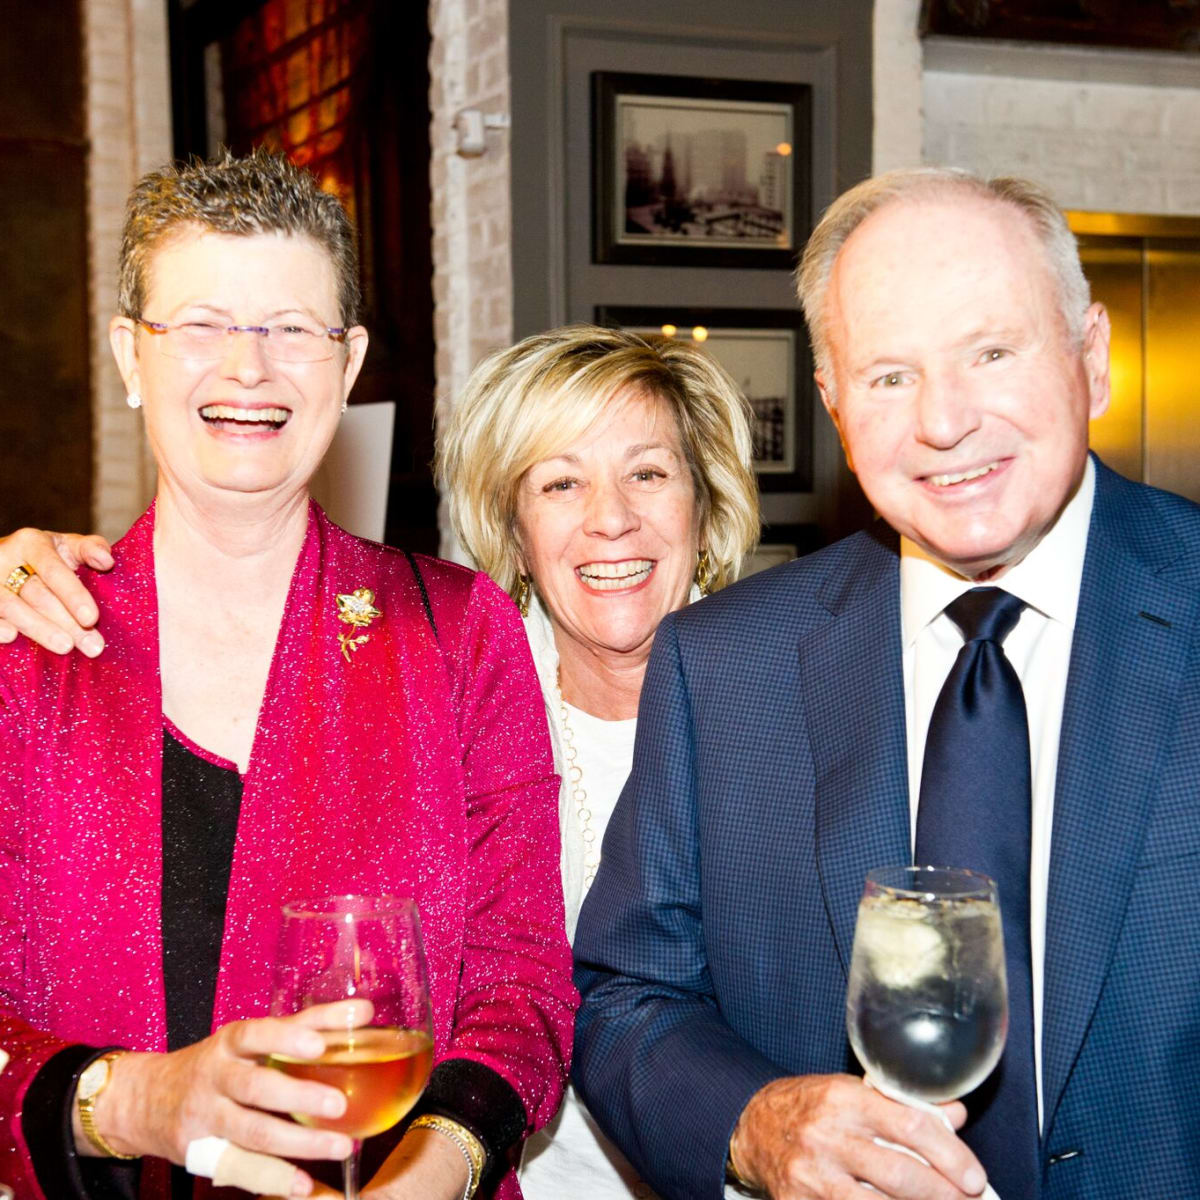 Houston, Friends for Life Among Friends gala, October 2015, Carolyn Levy, Chris Sanders, Don Sanders